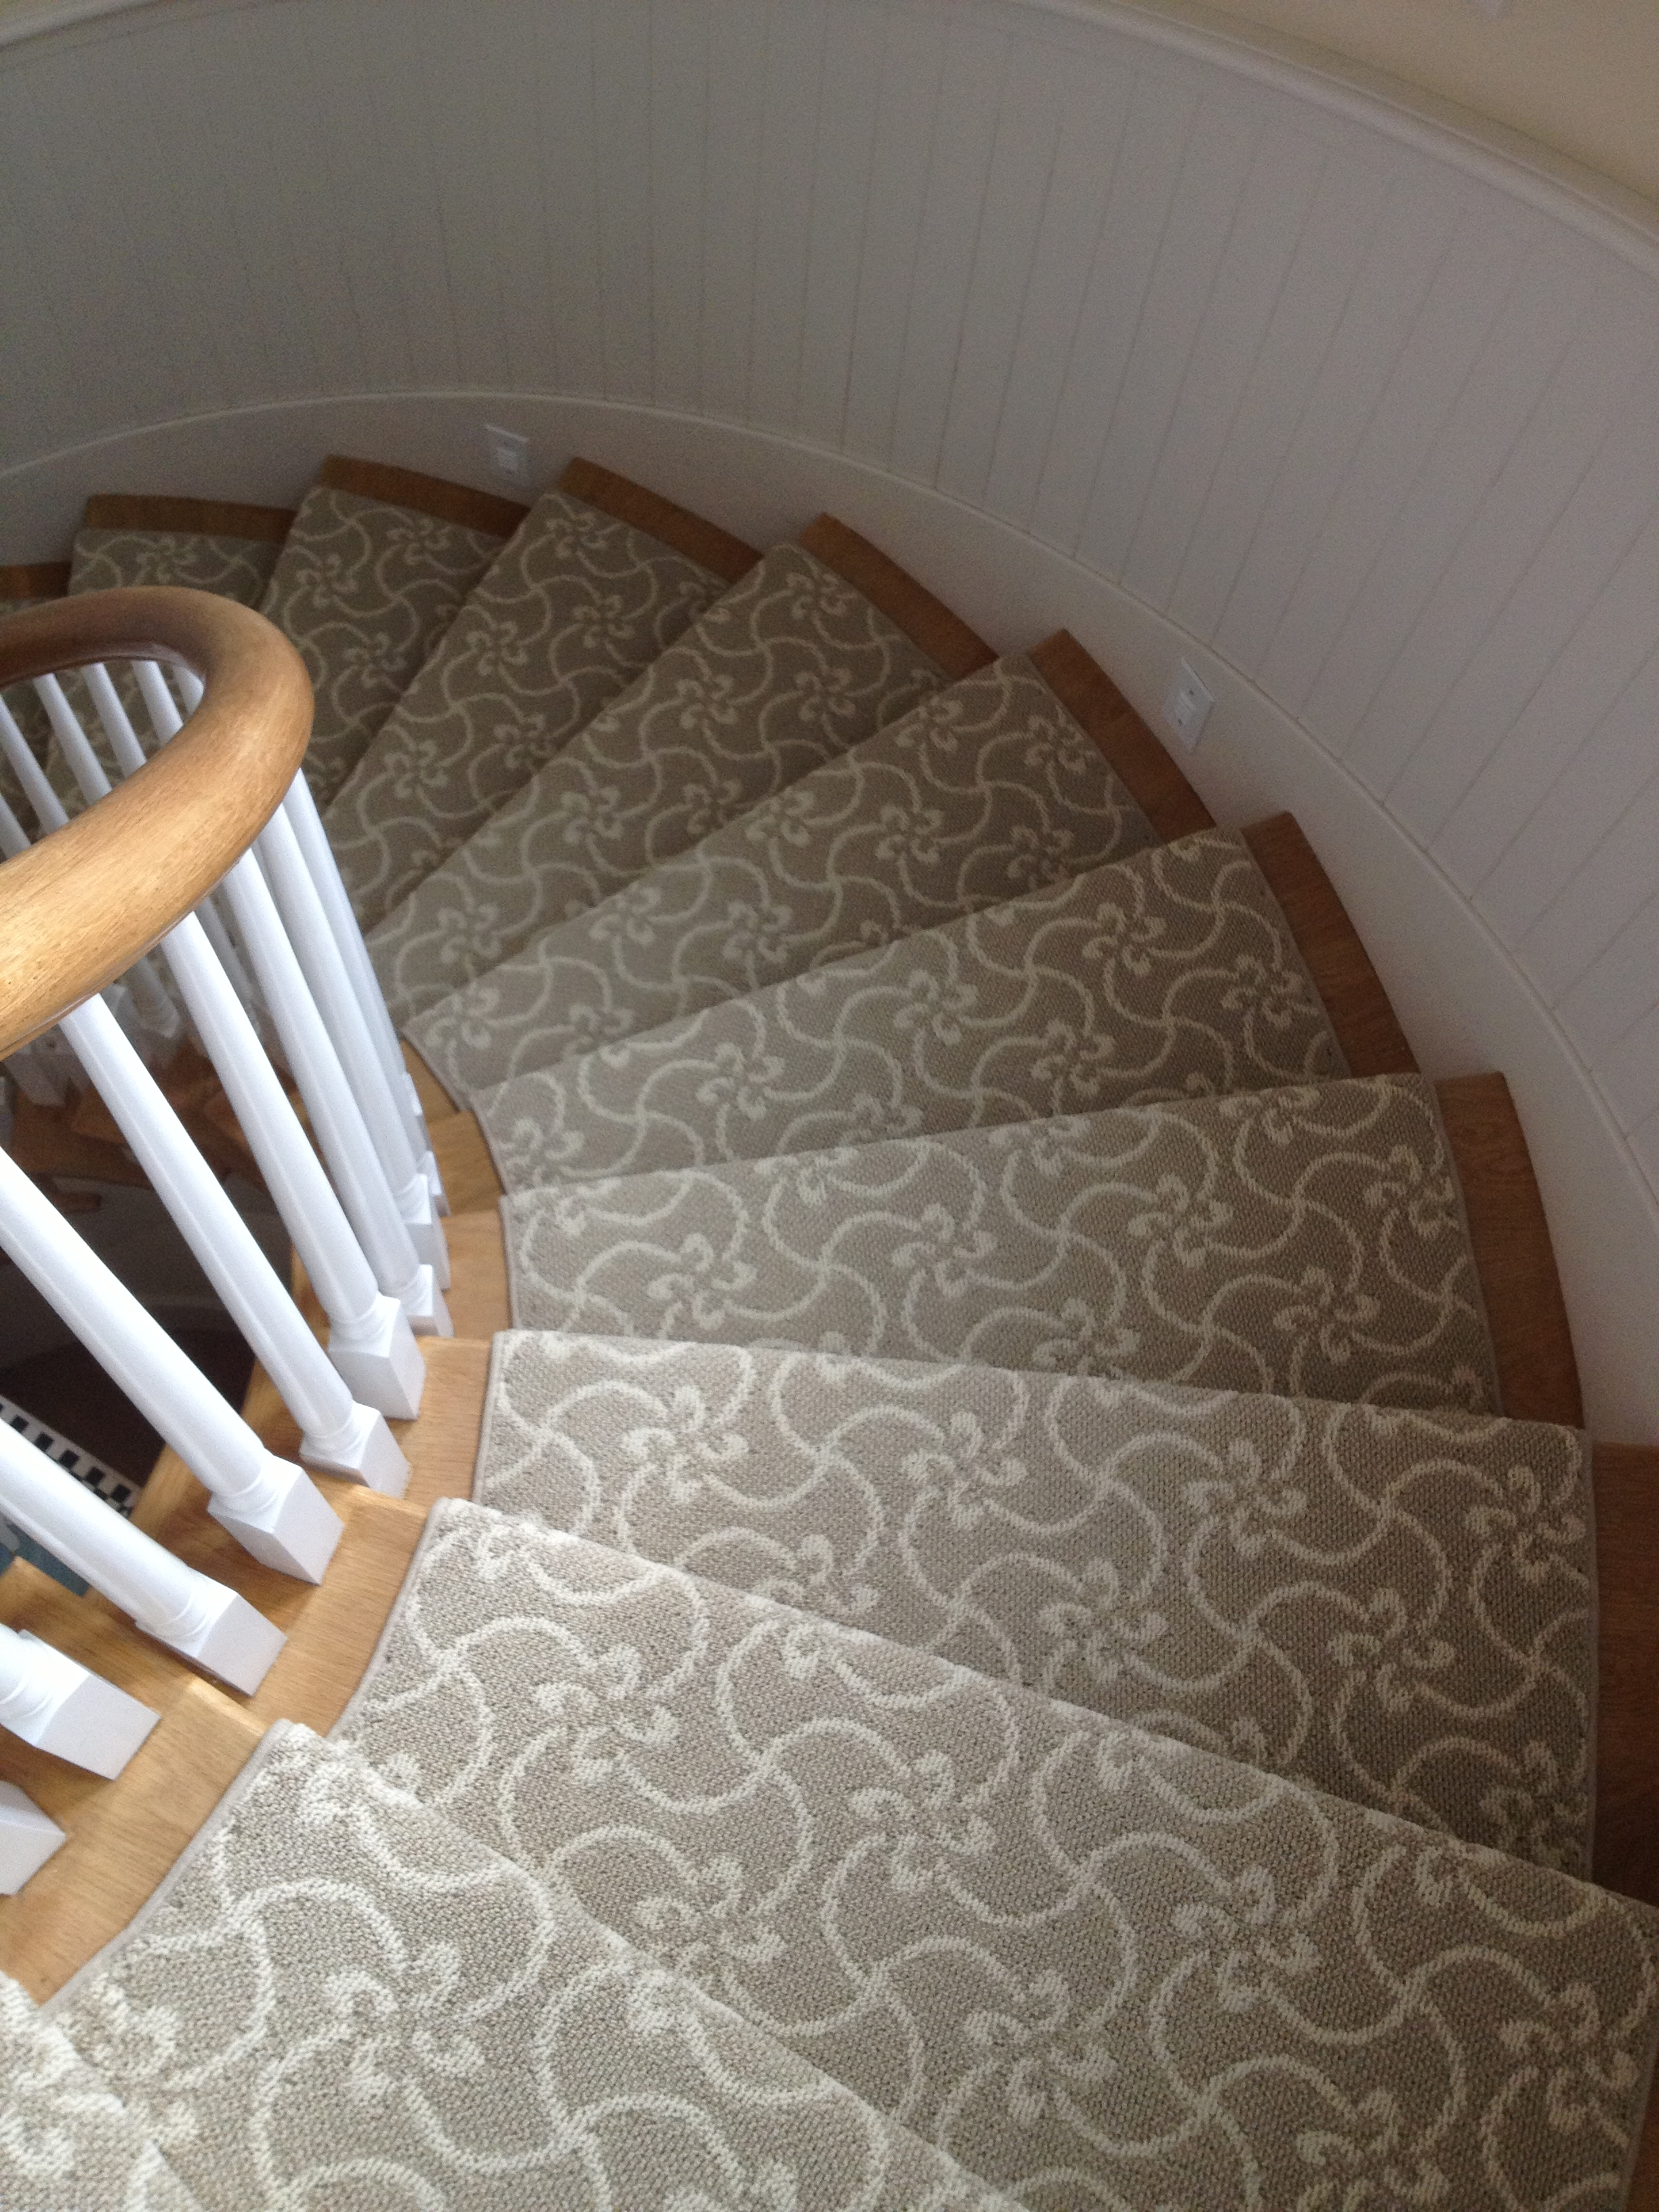 Stair Runners Hemphills Rugs Carpets Orange County With Rugs For Staircases (Image 15 of 15)